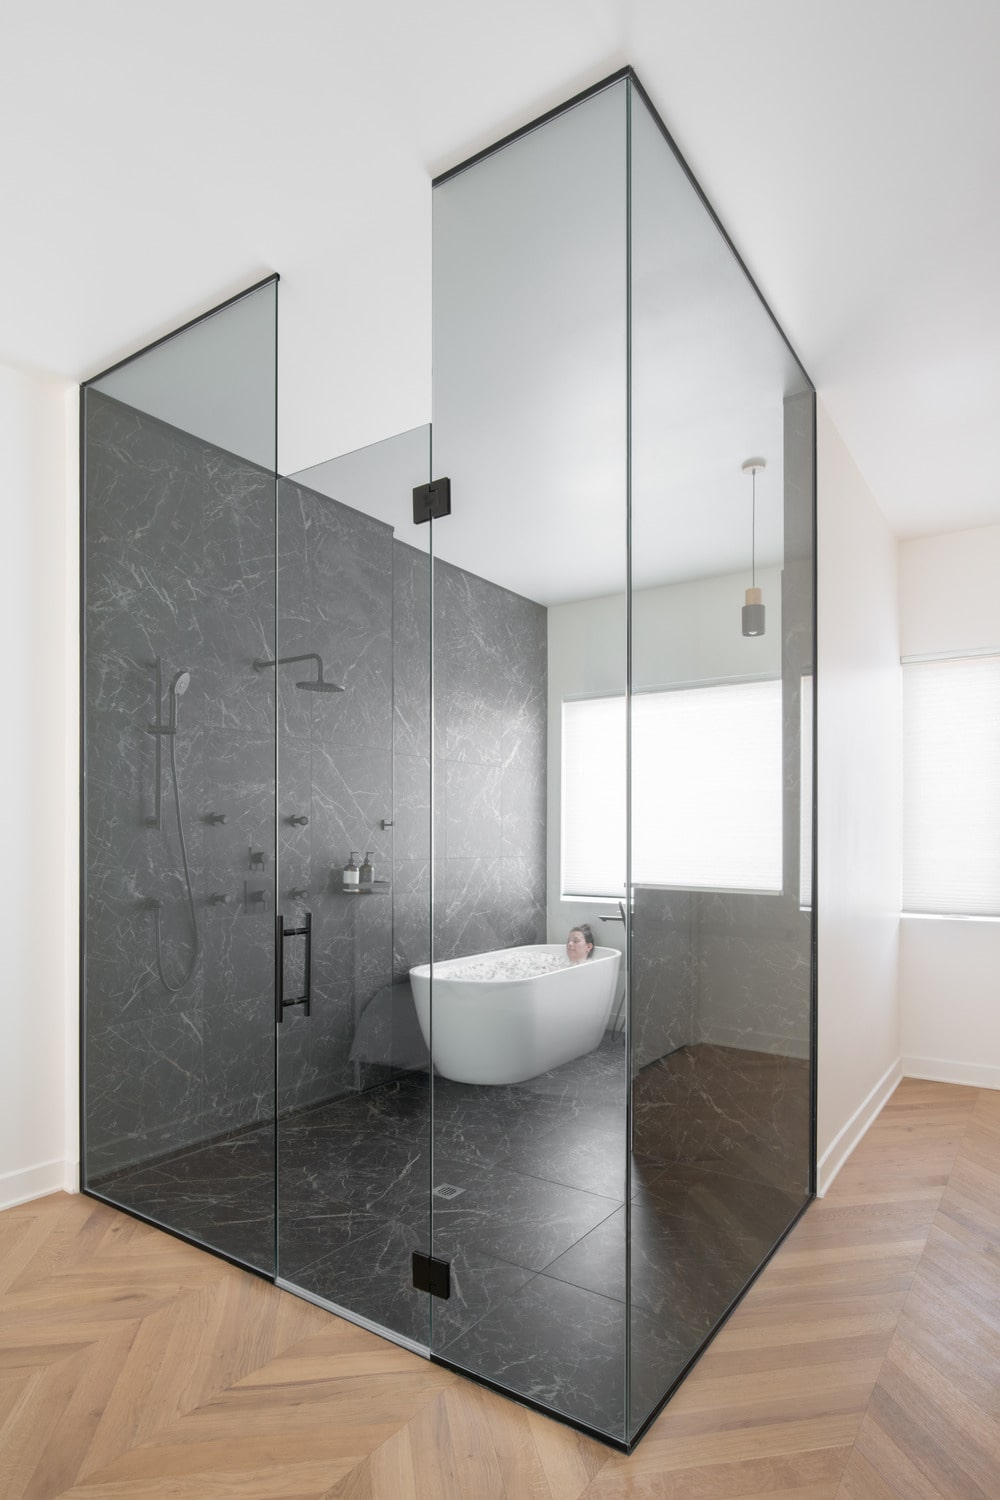 This is another look at the glass-enclosed bathroom that has a freestanding bathtub by the corner windows and a vanity on its other side.